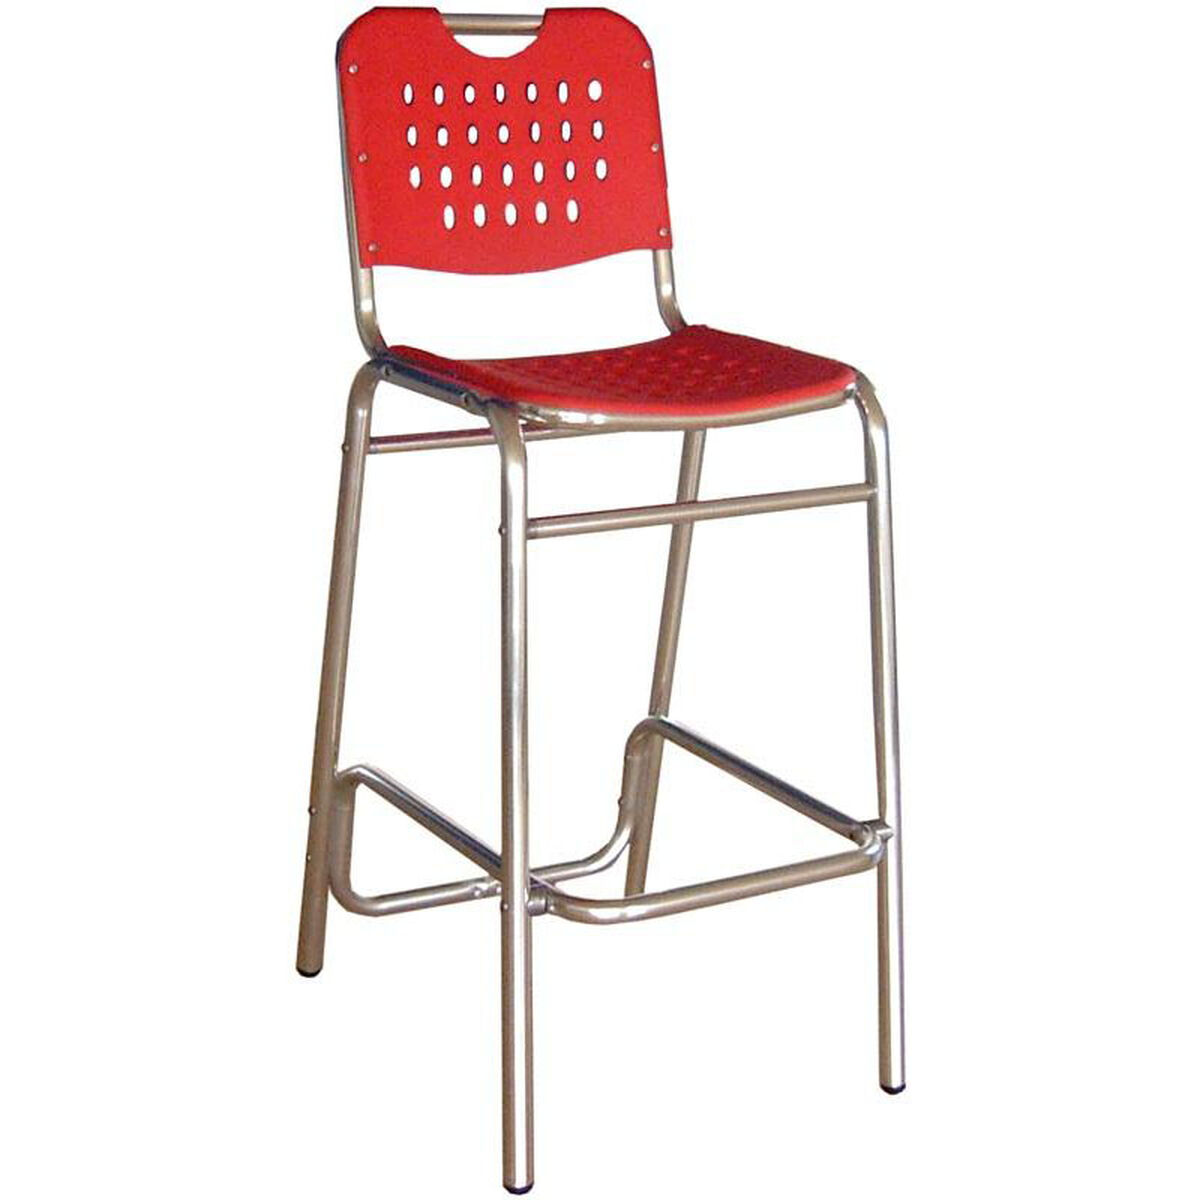 Florida Seating Palm Beach Collection Red Outdoor Barstool